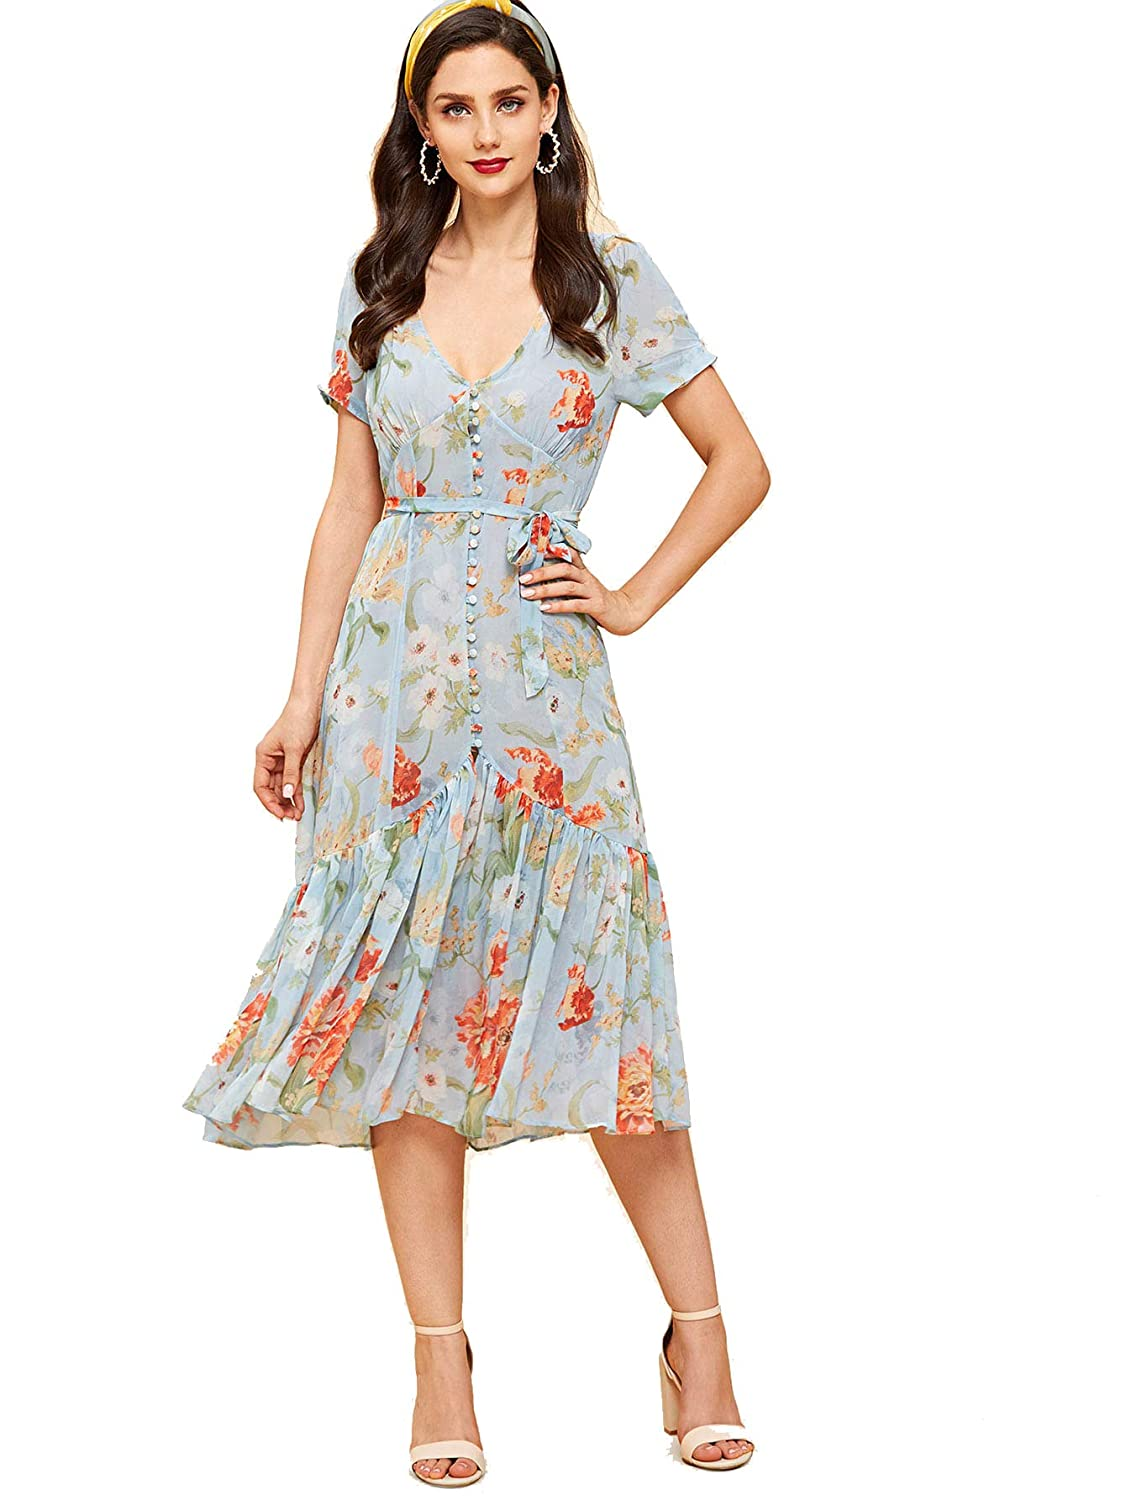 1930s Day Dresses, Afternoon Dresses History Milumia Women Vintage Retro V Neck Pleated Ruffle A Line Fit Flare Party Dress $28.99 AT vintagedancer.com